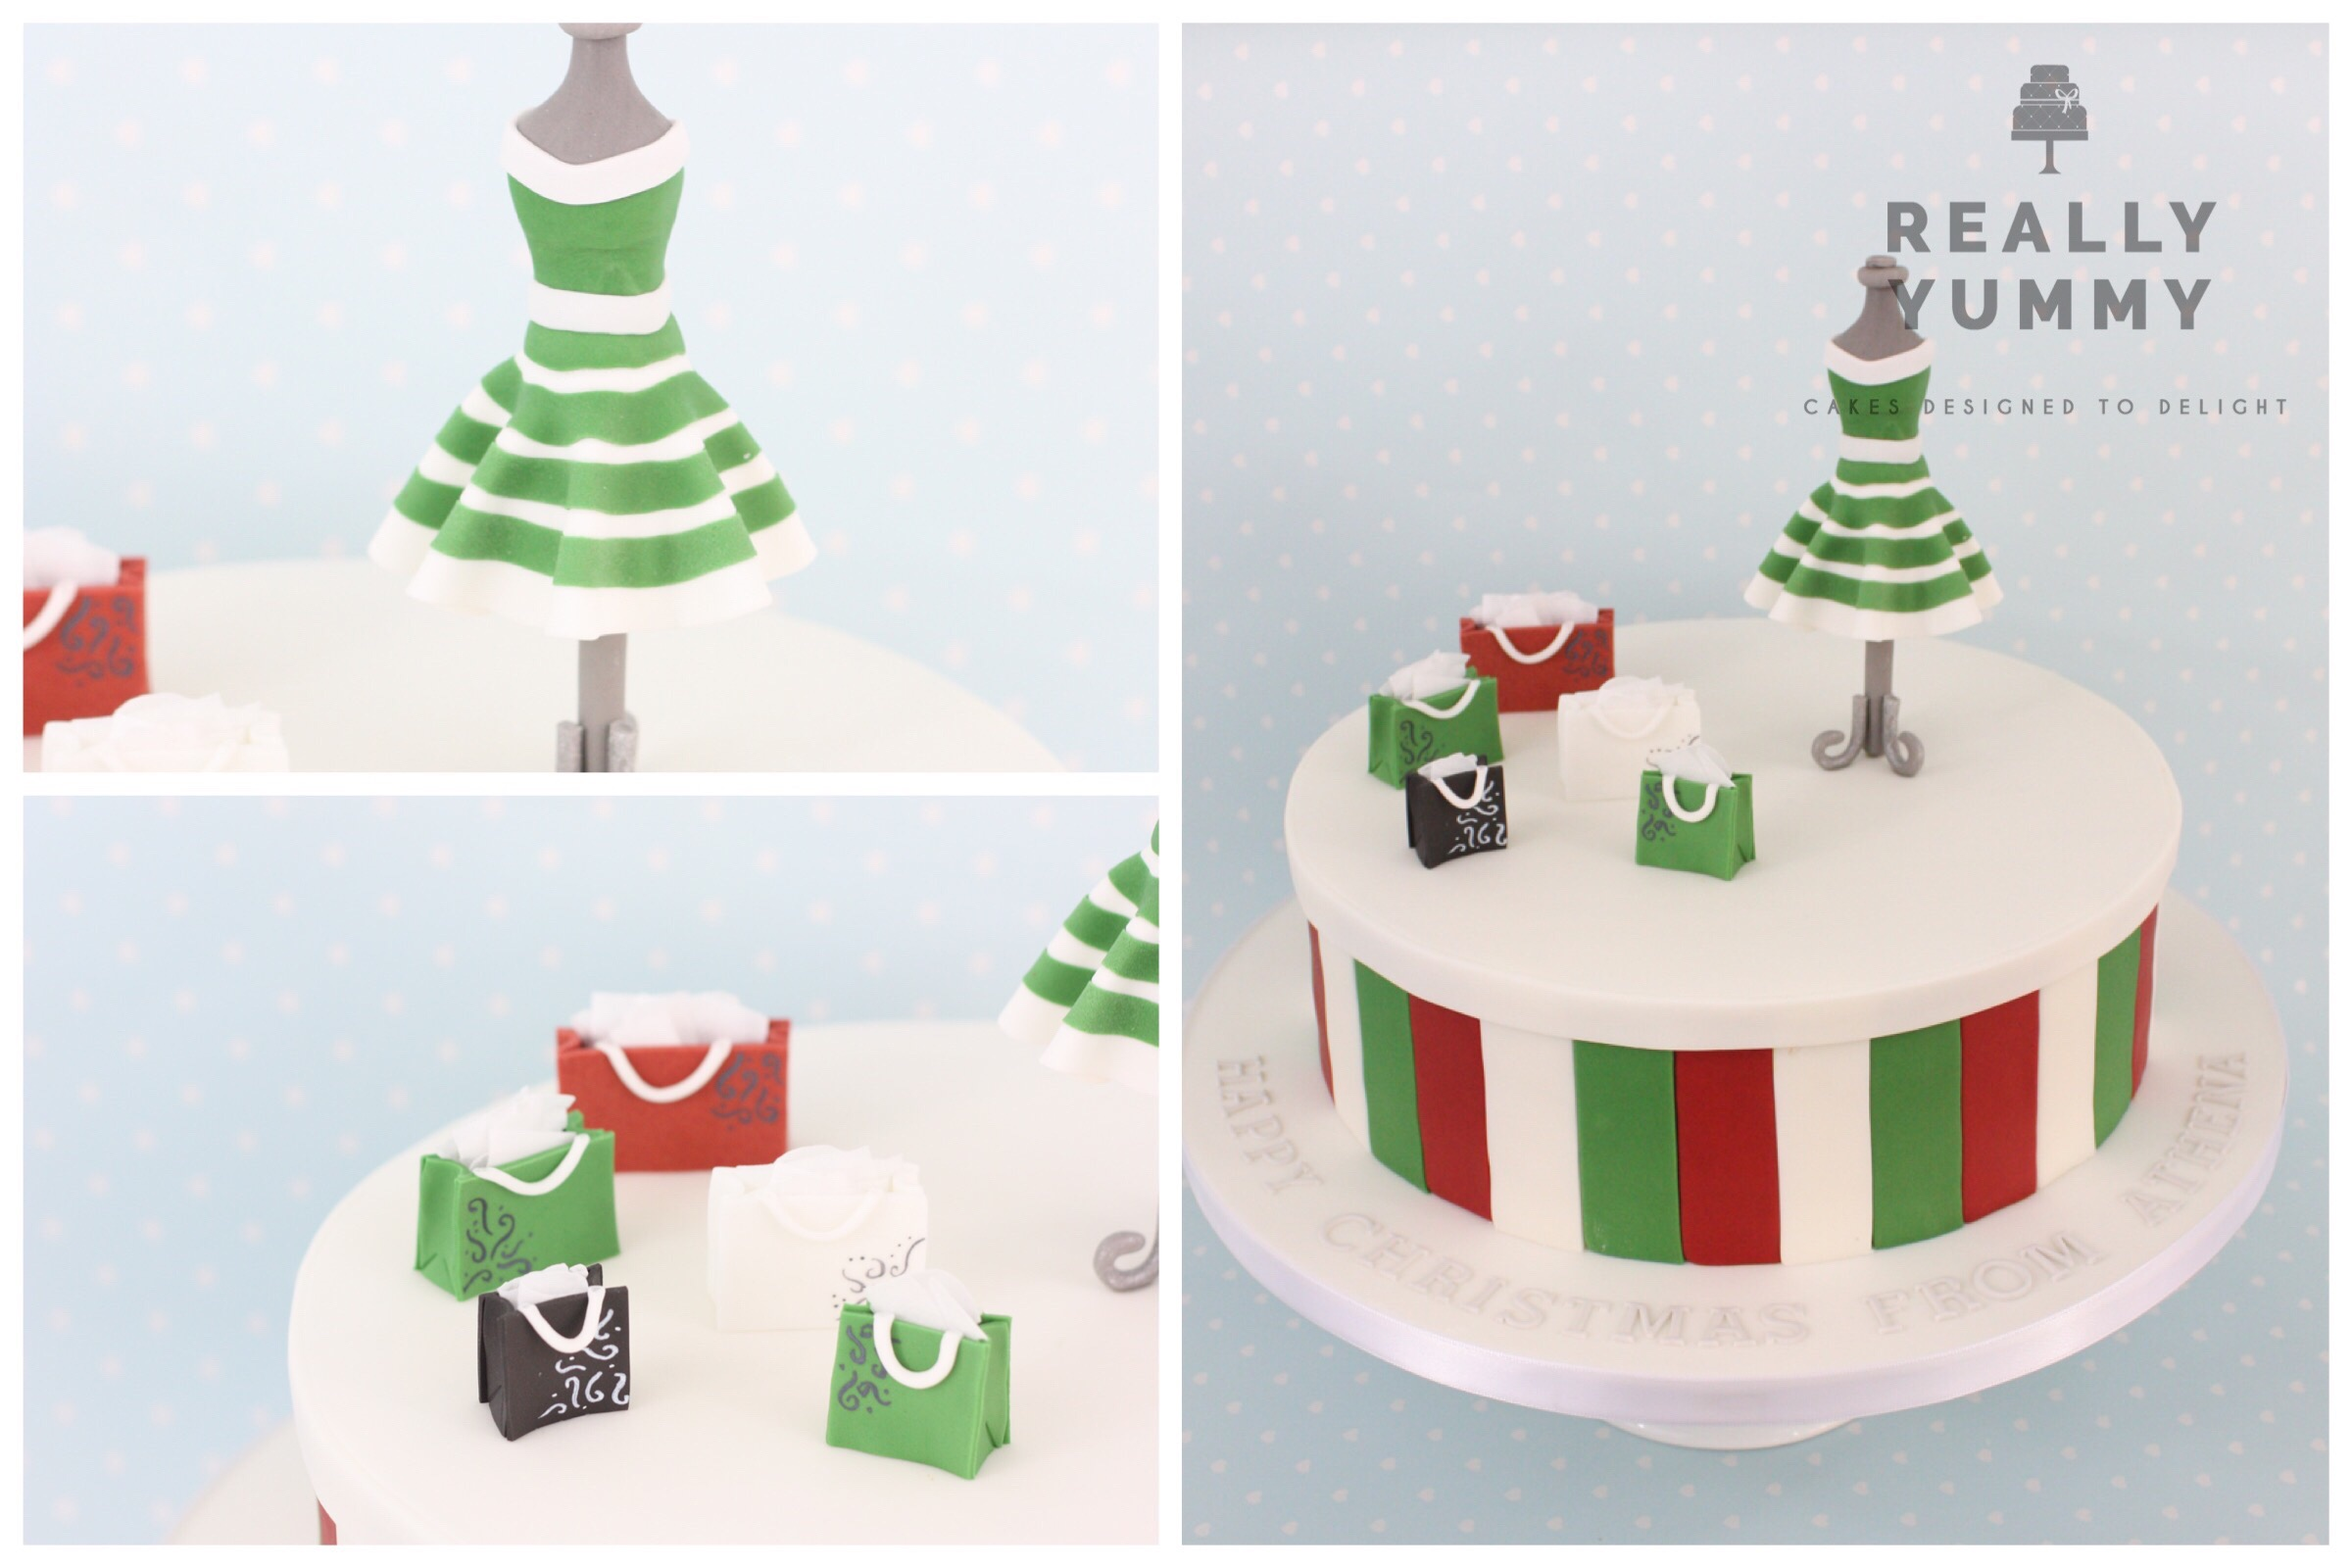 Christmas shopping cake, with green striped dress and shopping bags